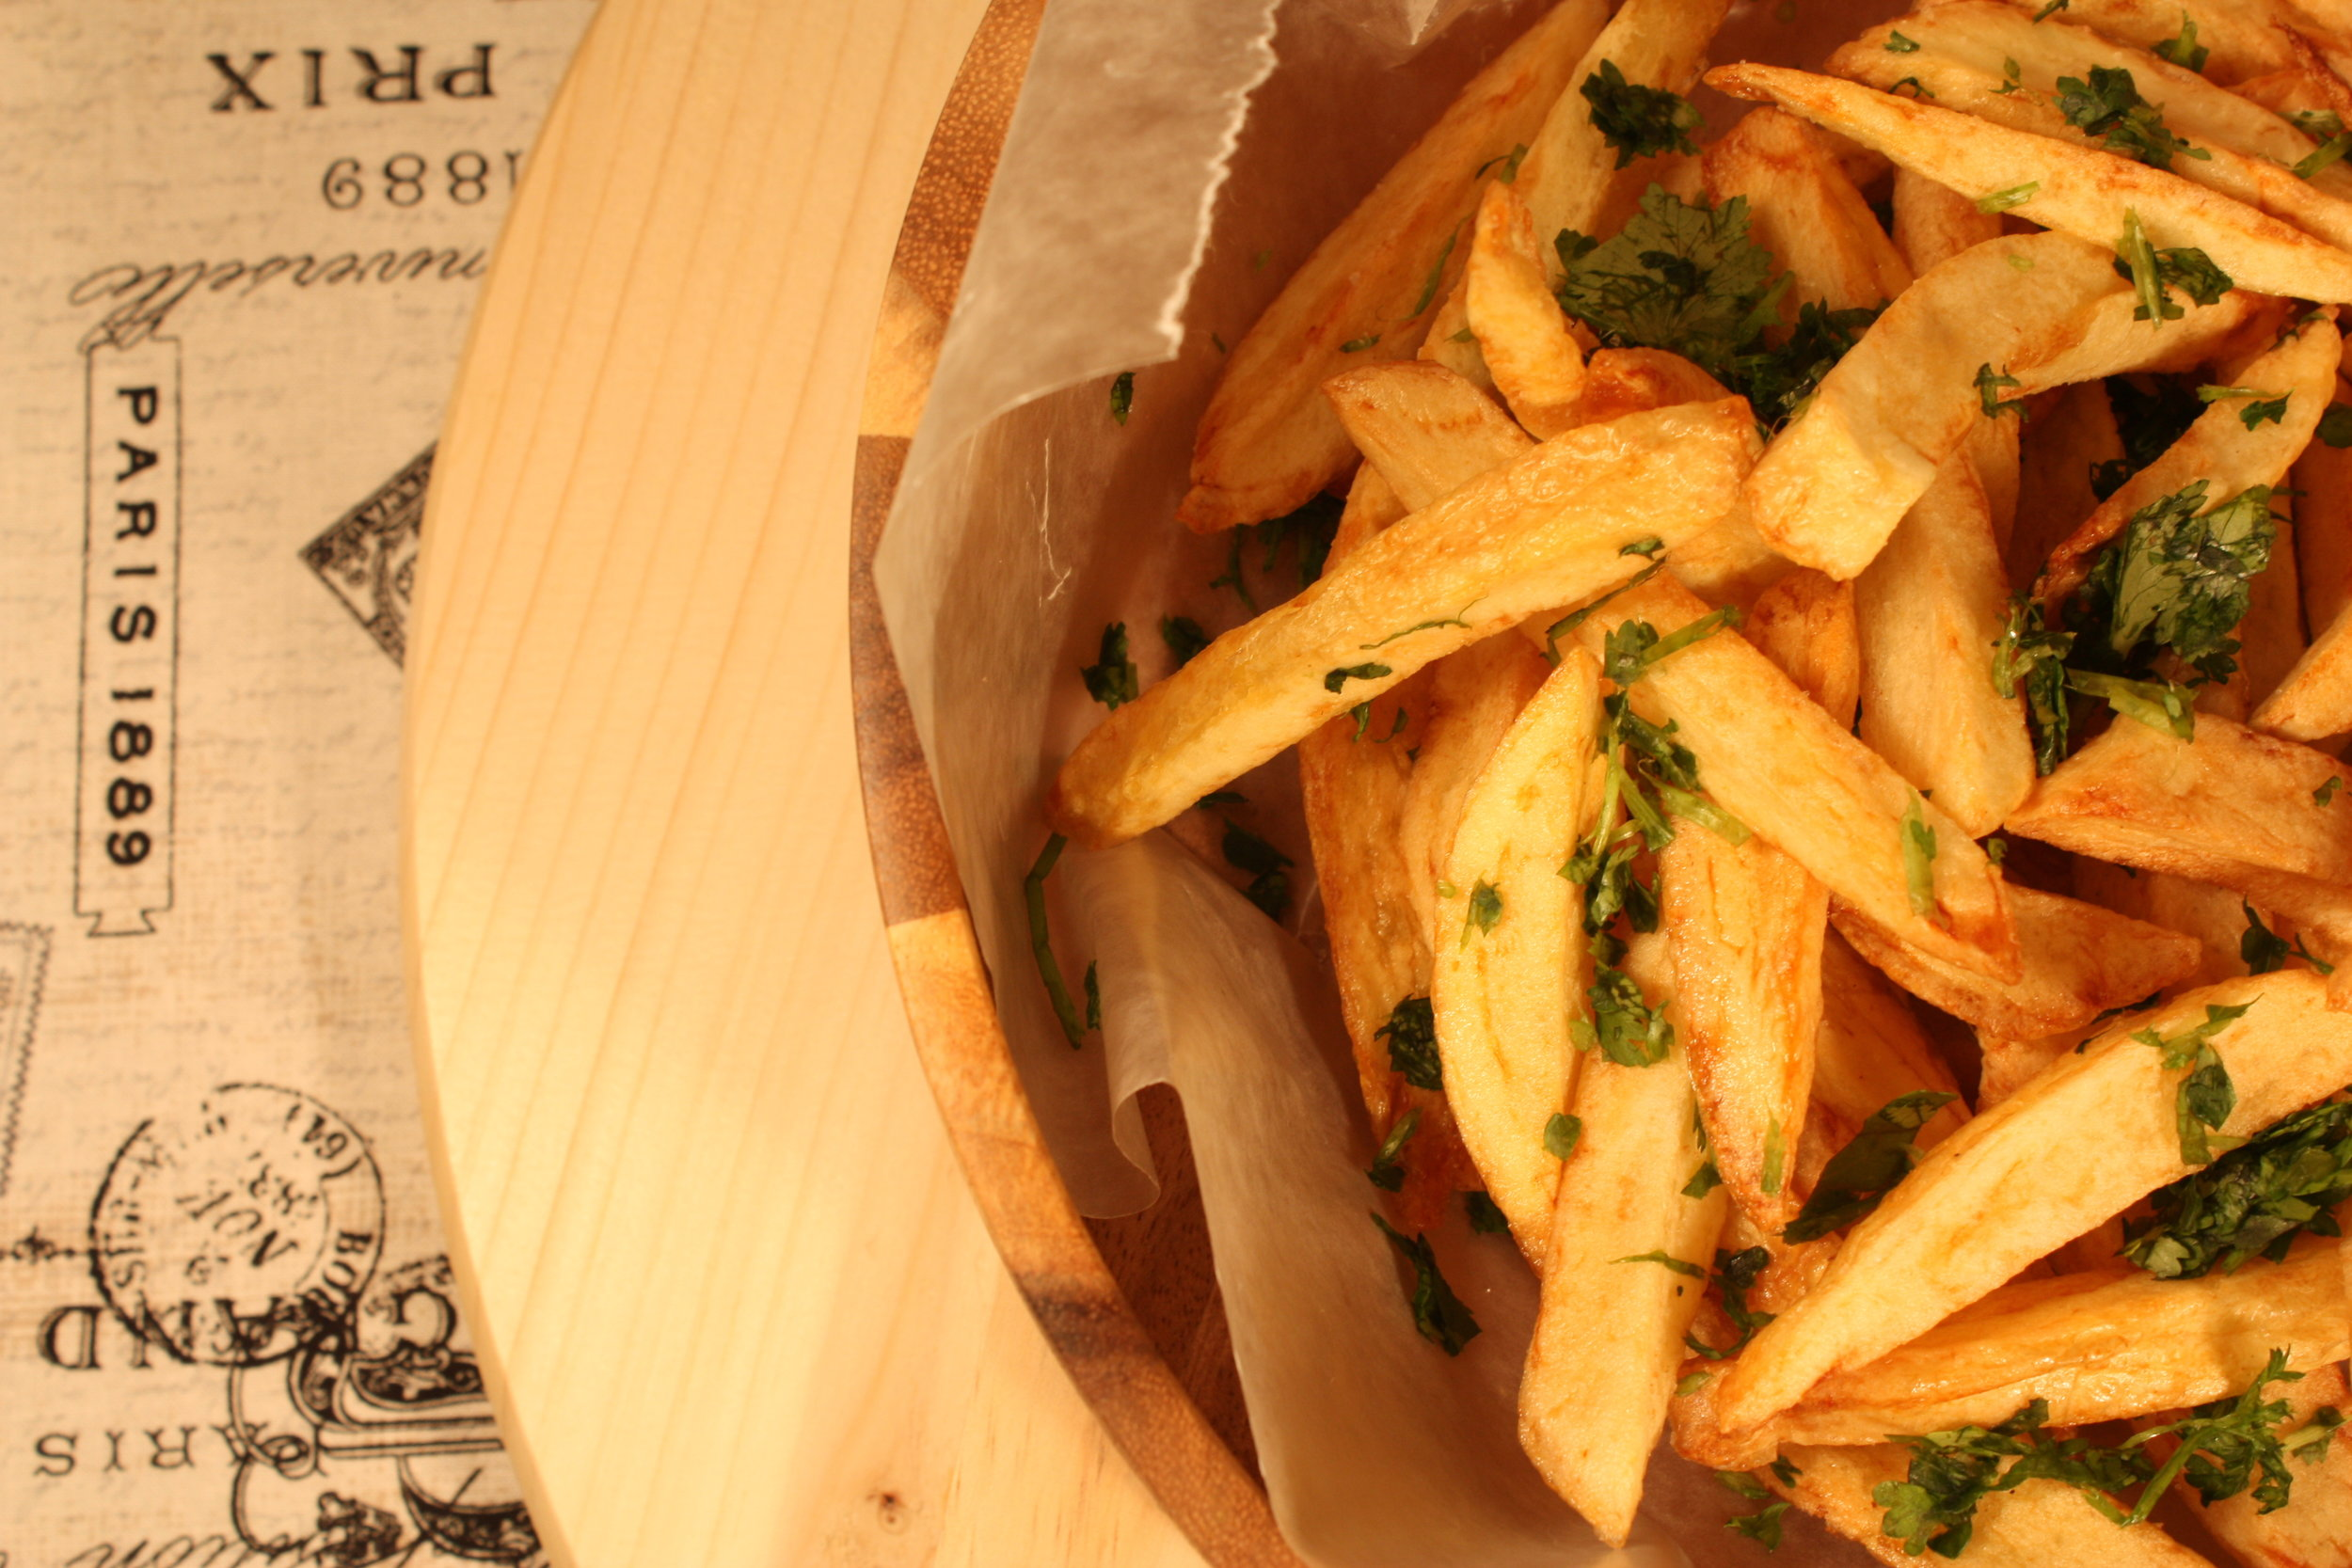 VEGANATION Garlic Herb Fries